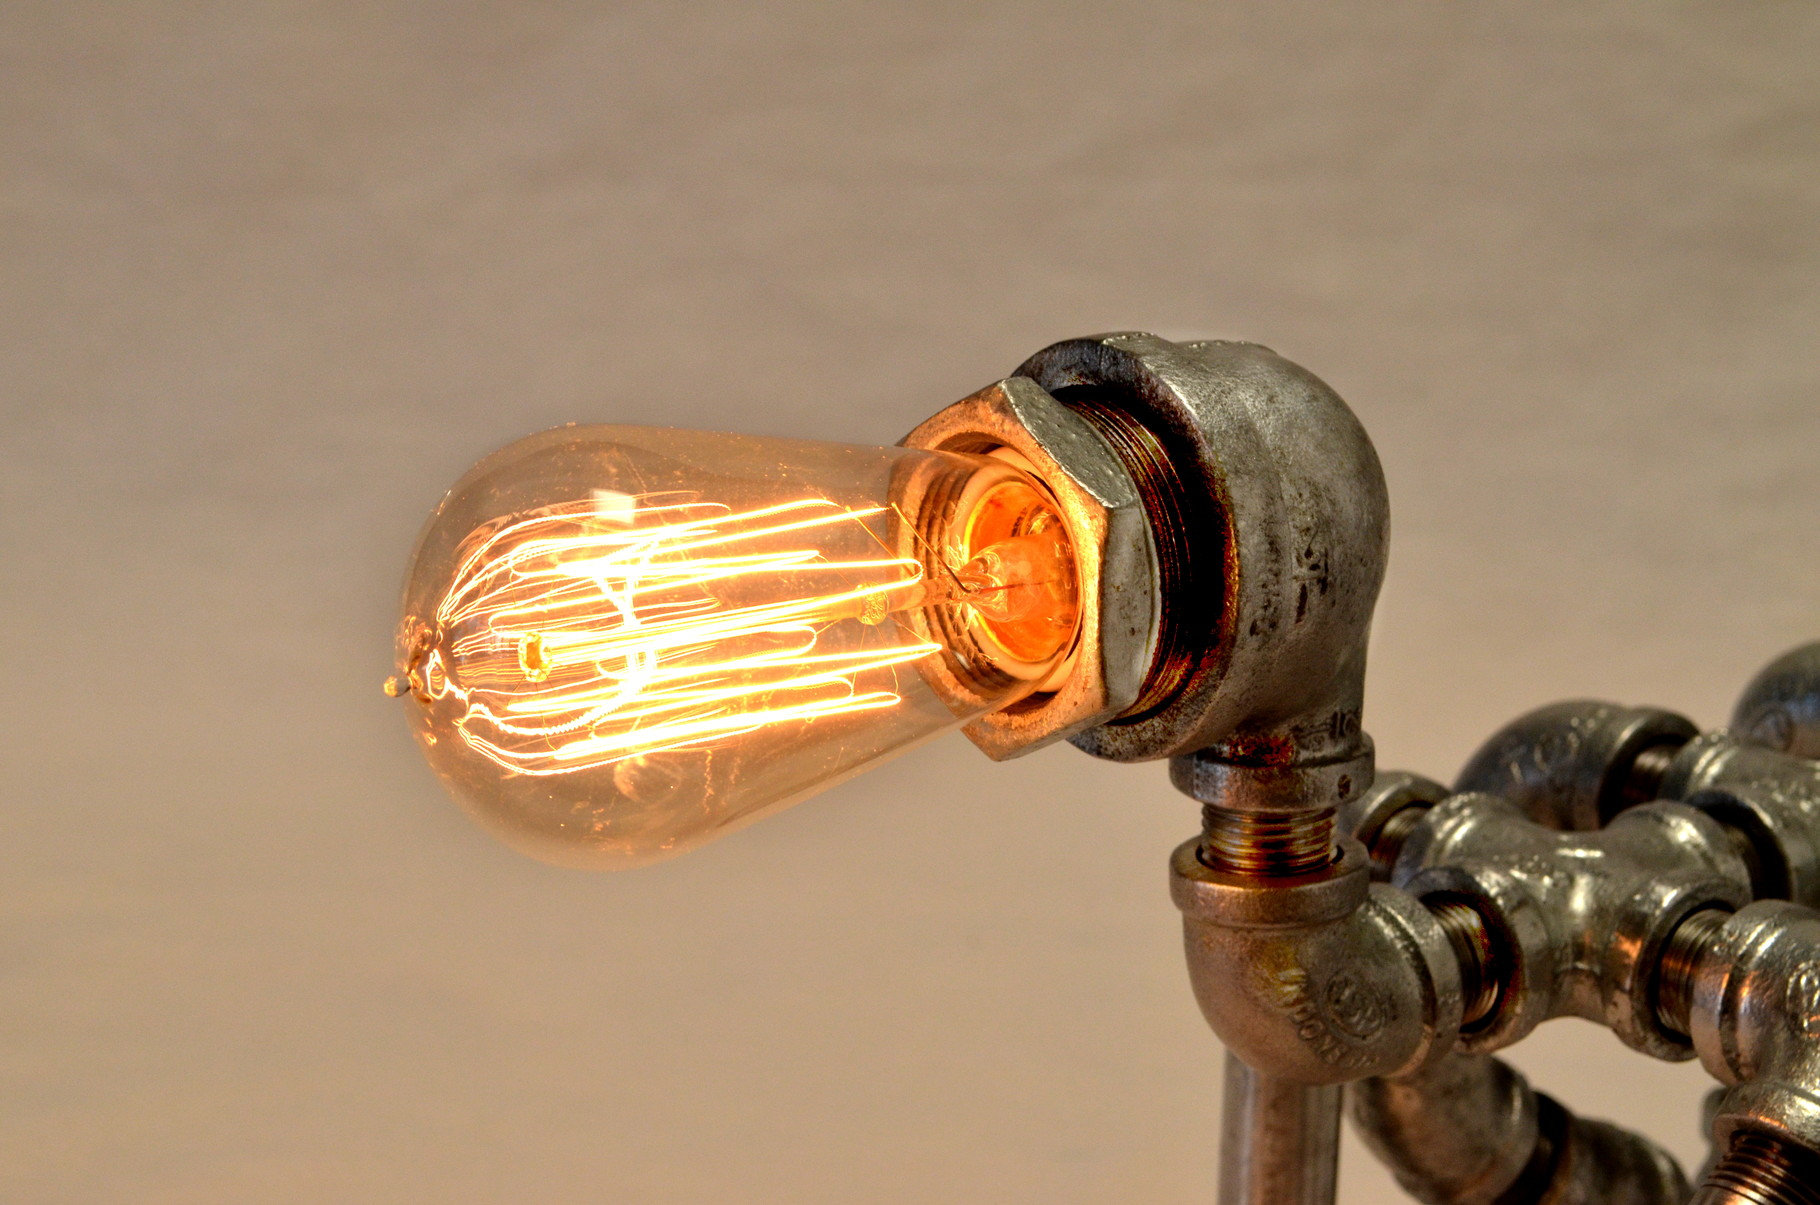 Critter's vintage-inspired 40 watt, hand wound bulb adds a warm glow to any room.